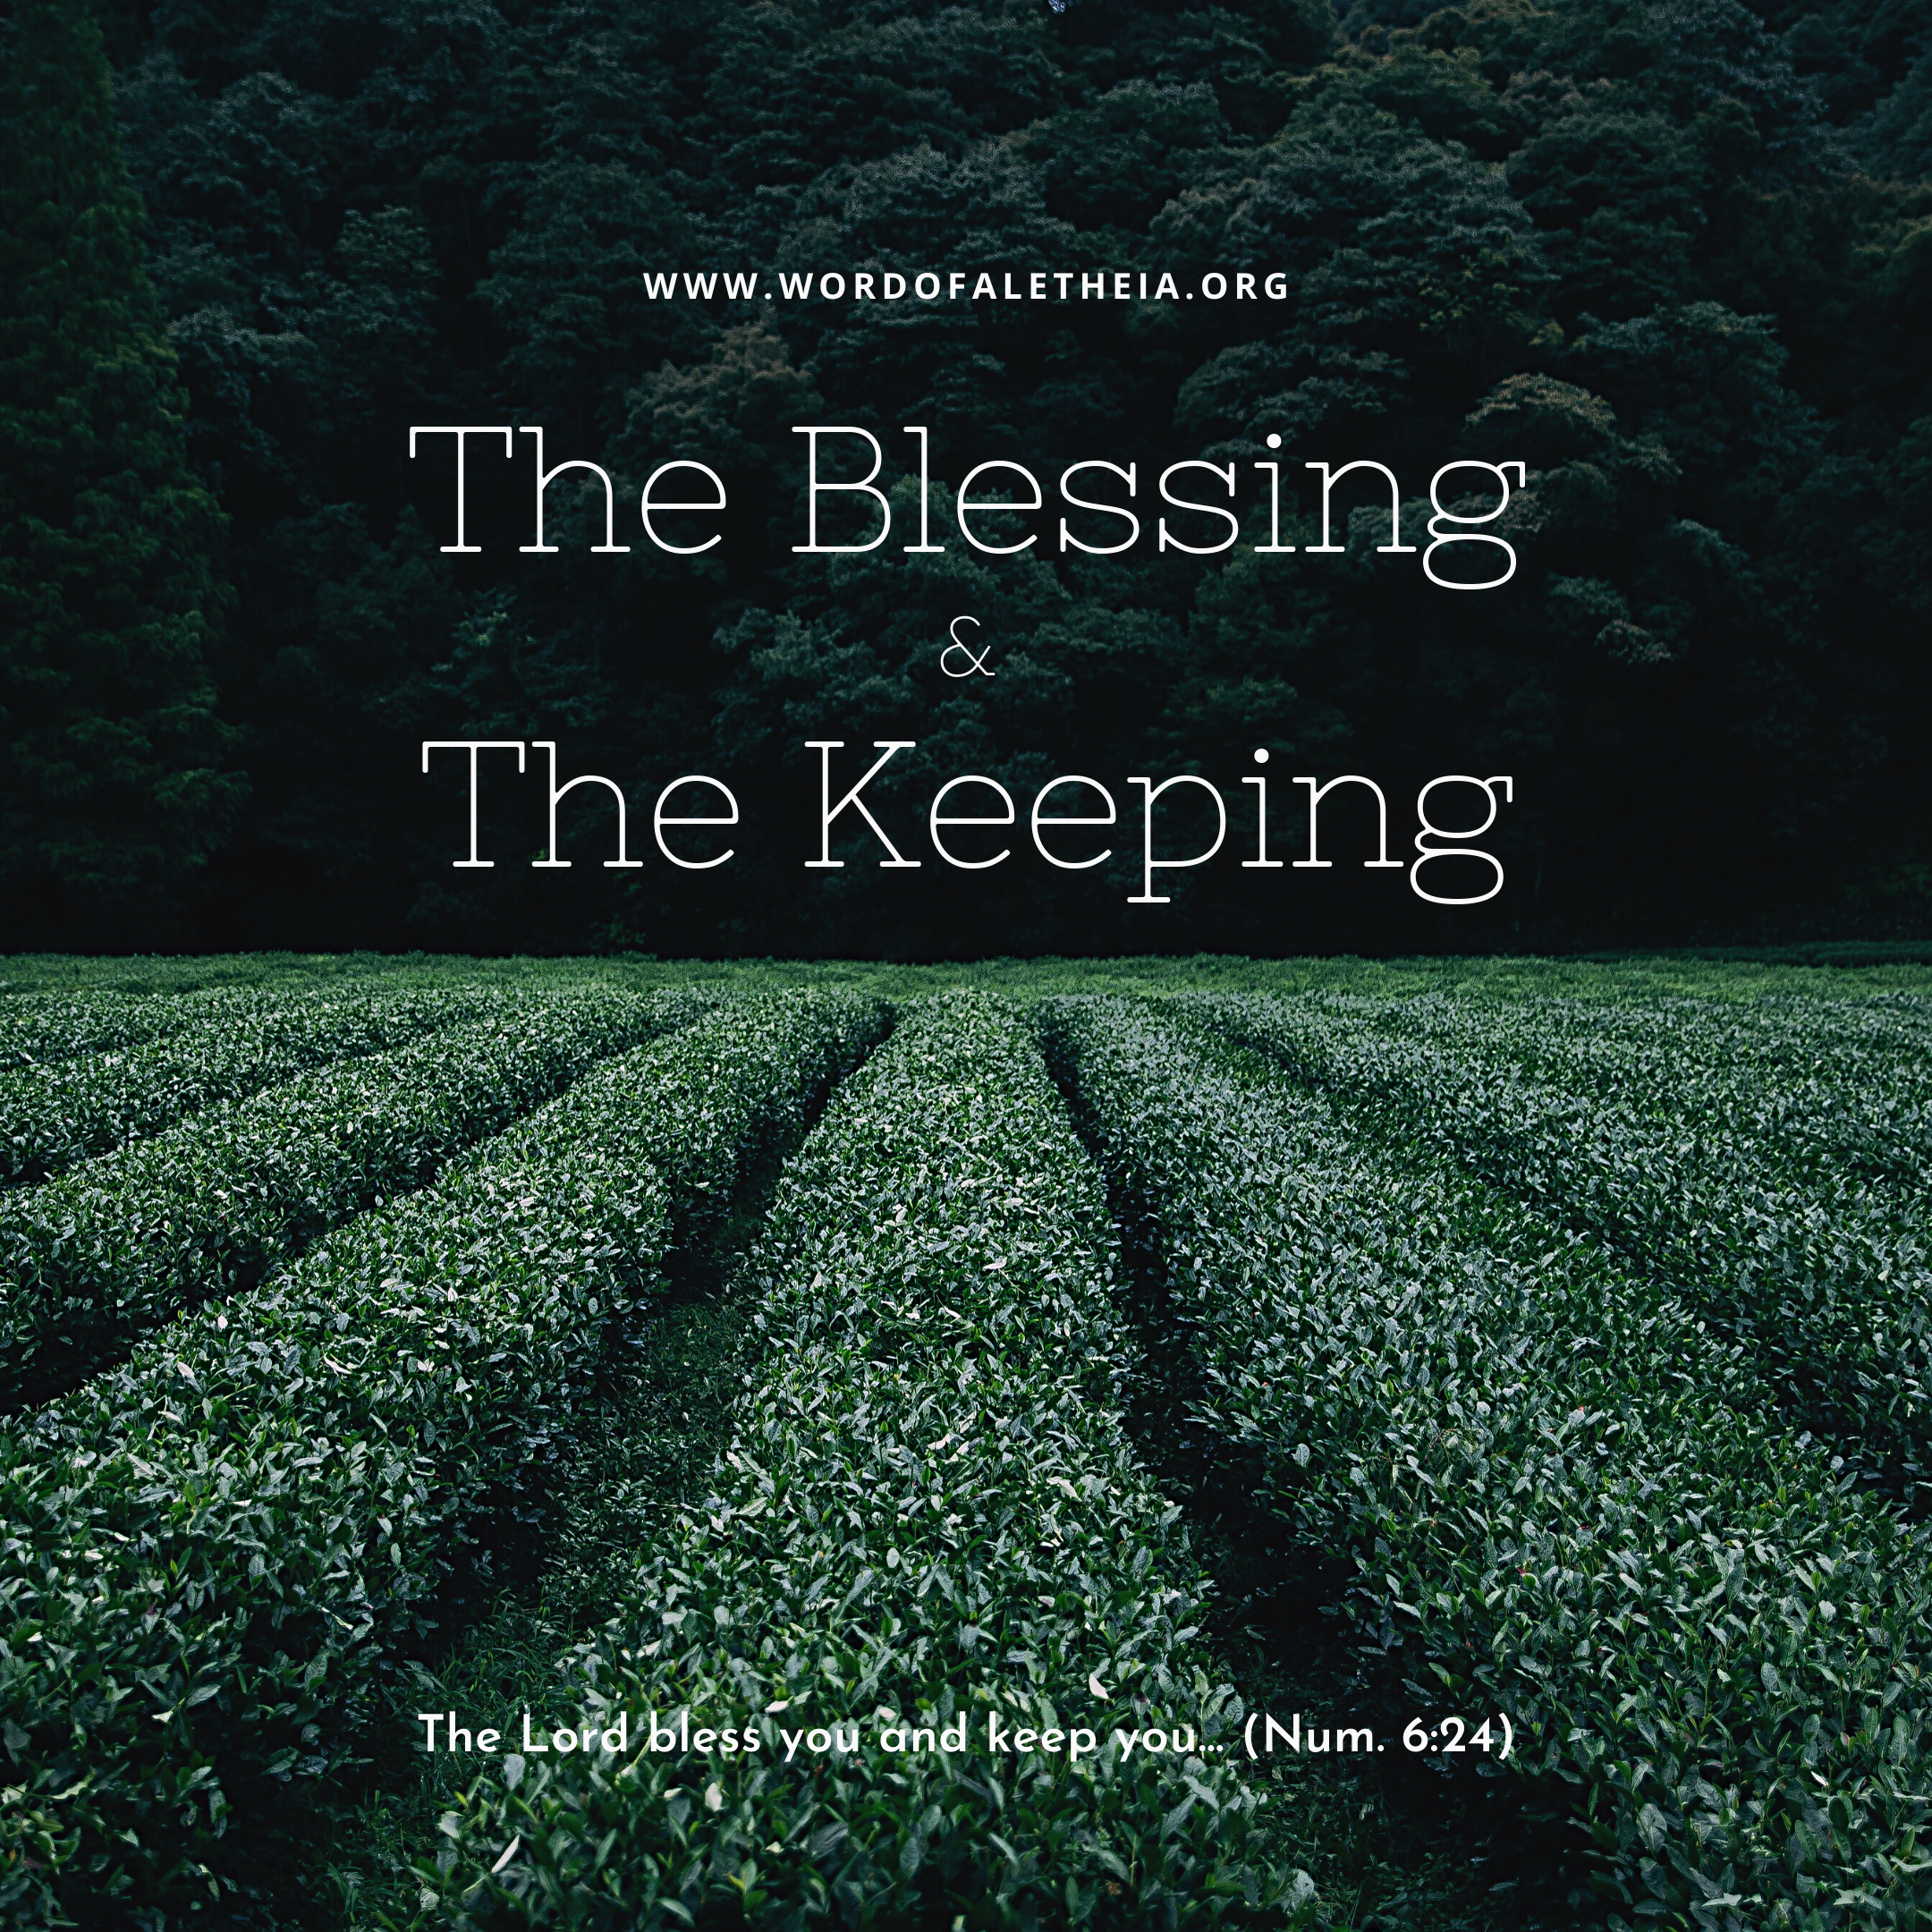 The blessing & The Keeping